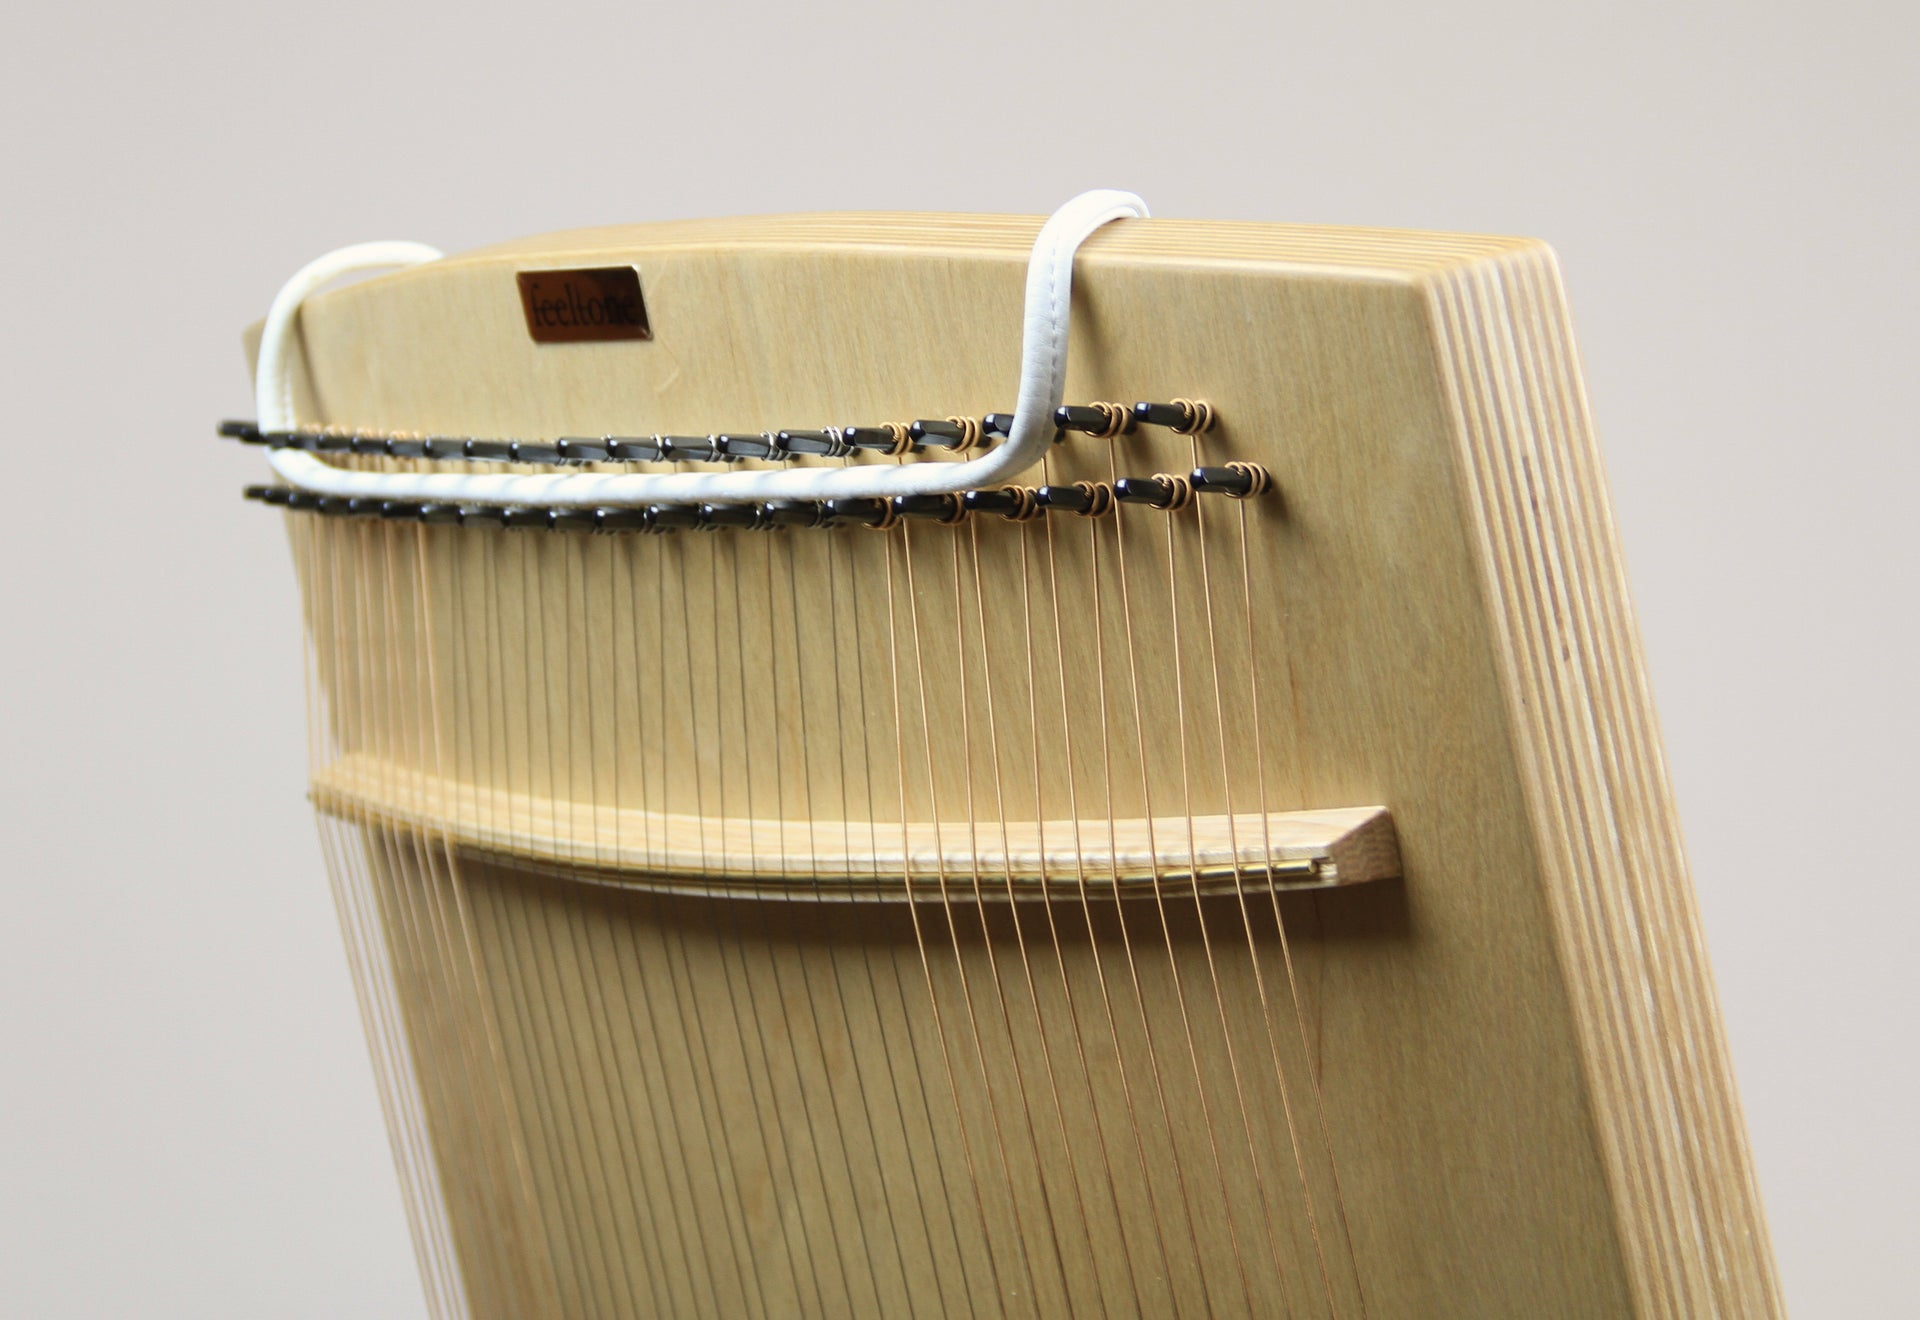 Monochord Singing Chair